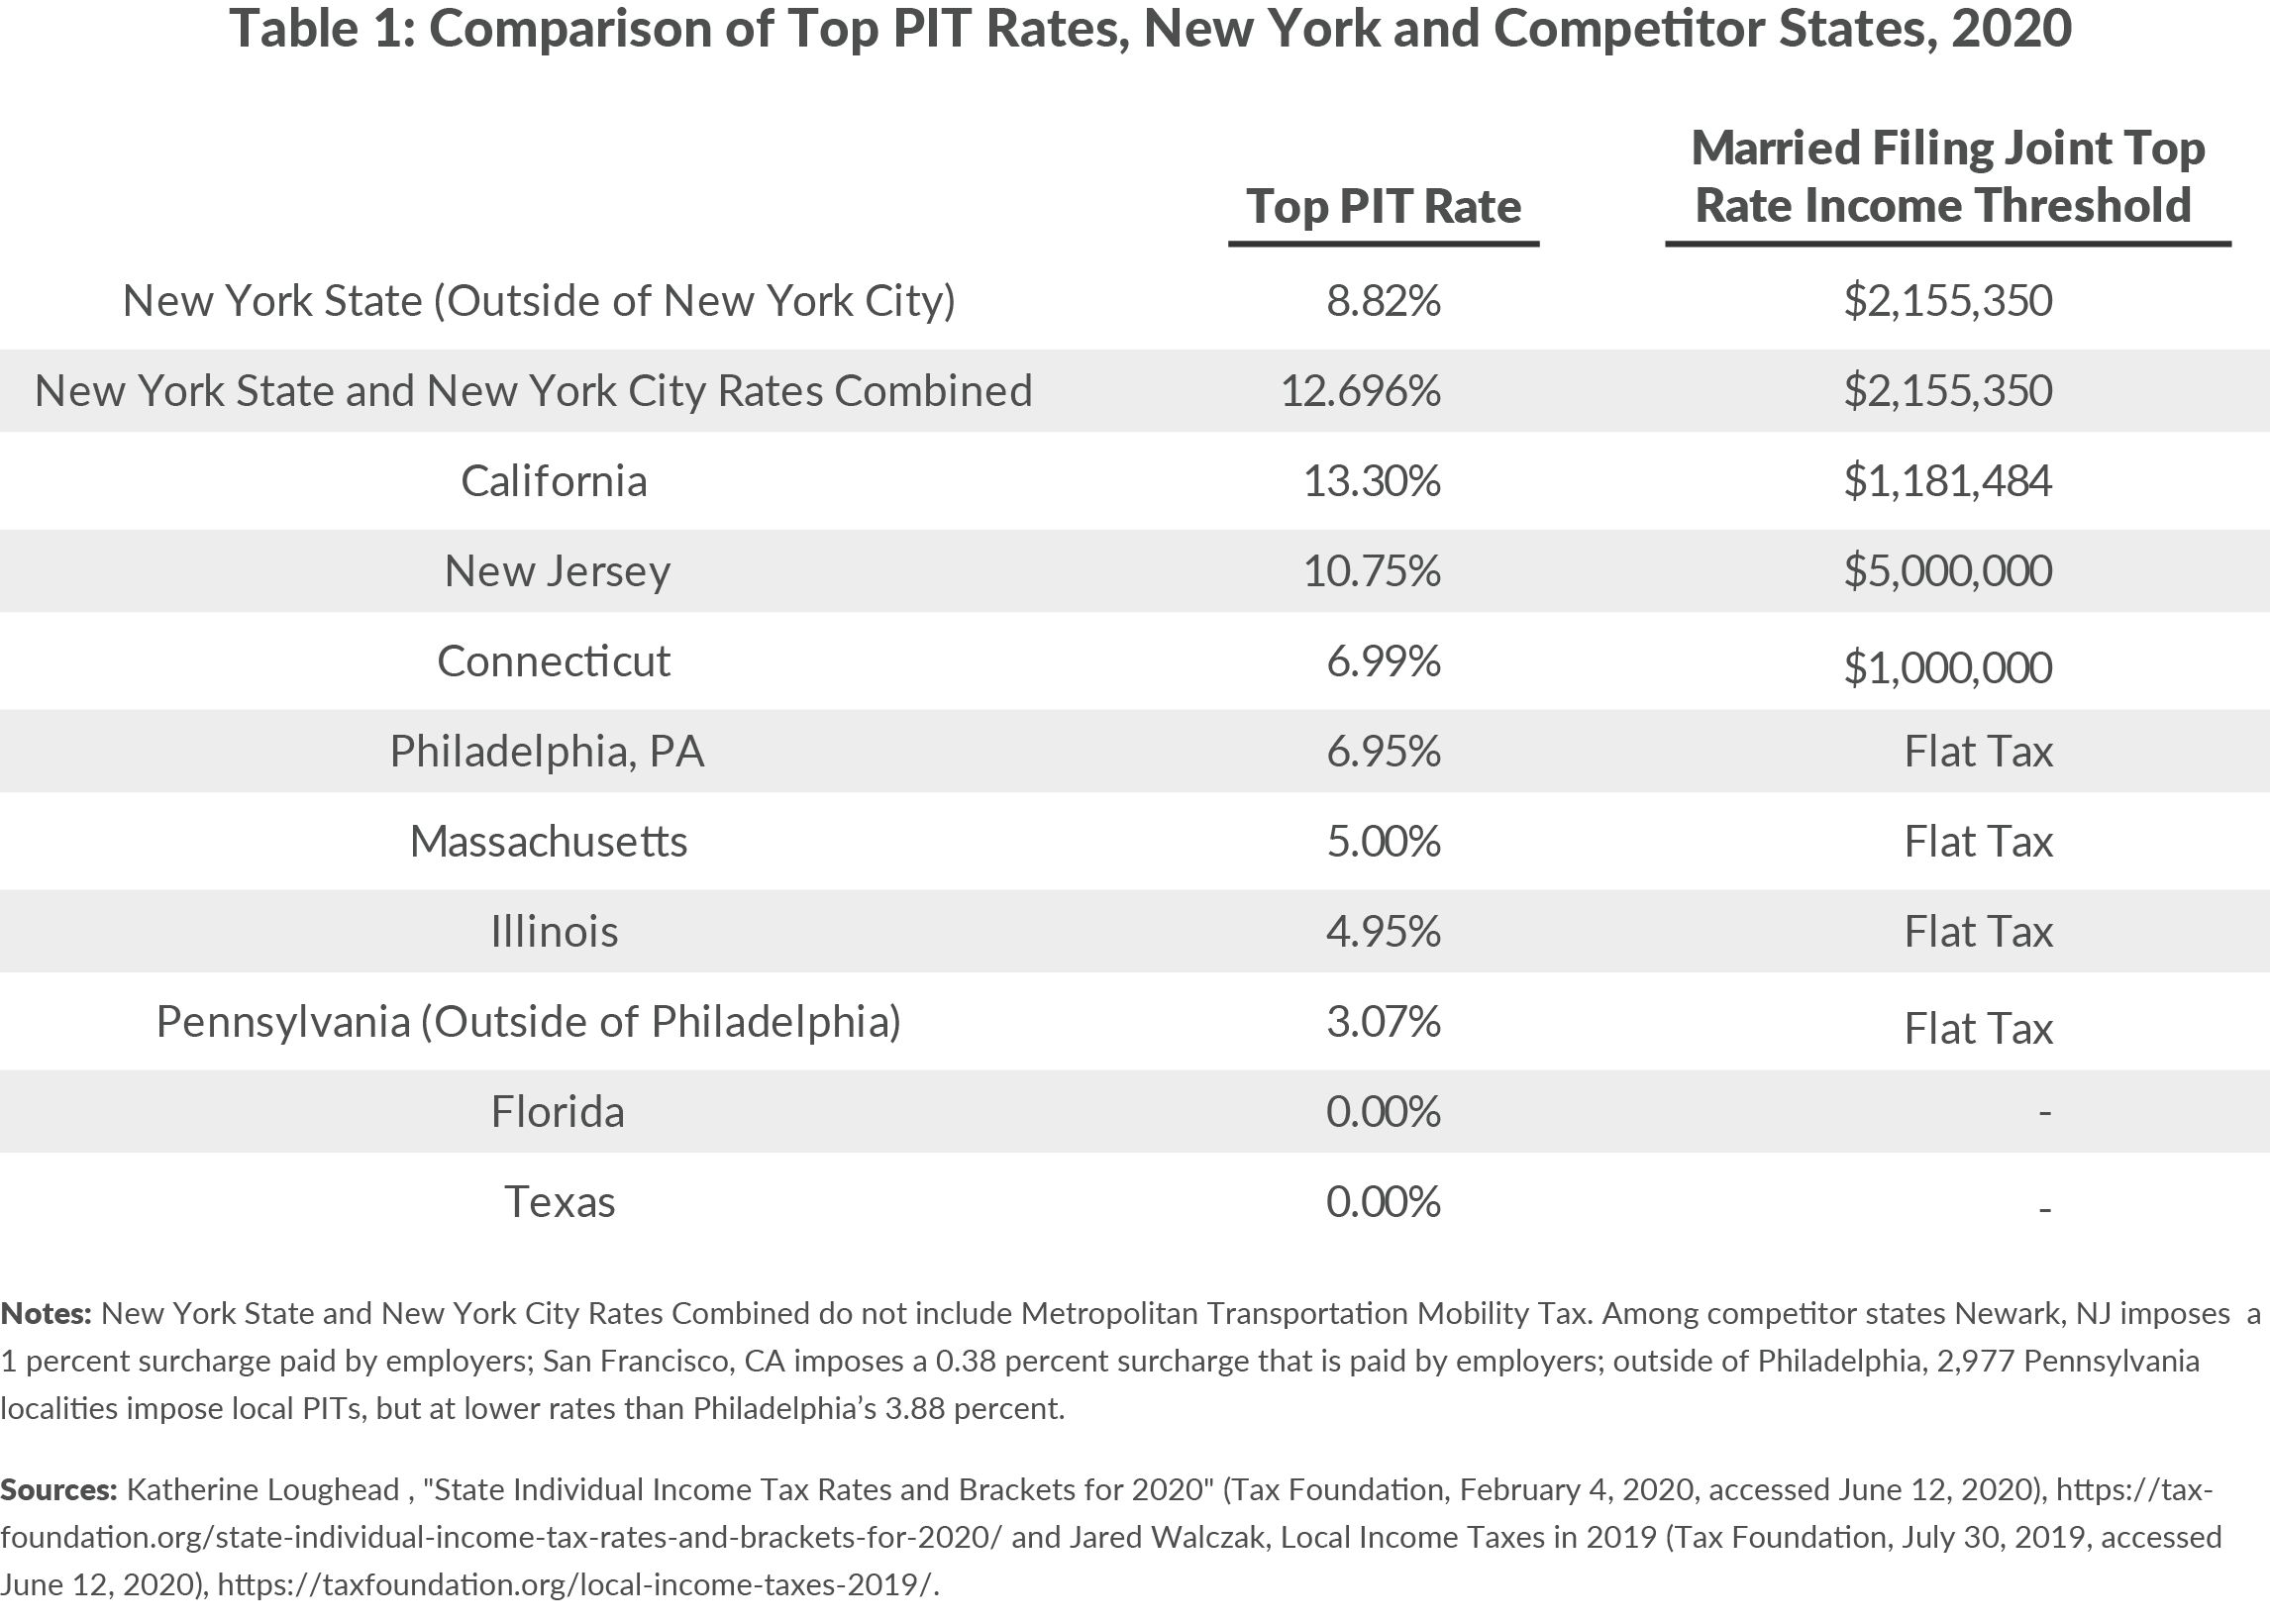 Table 1: Comparison of Top PIT Rates, New York and Competitor States, 2020